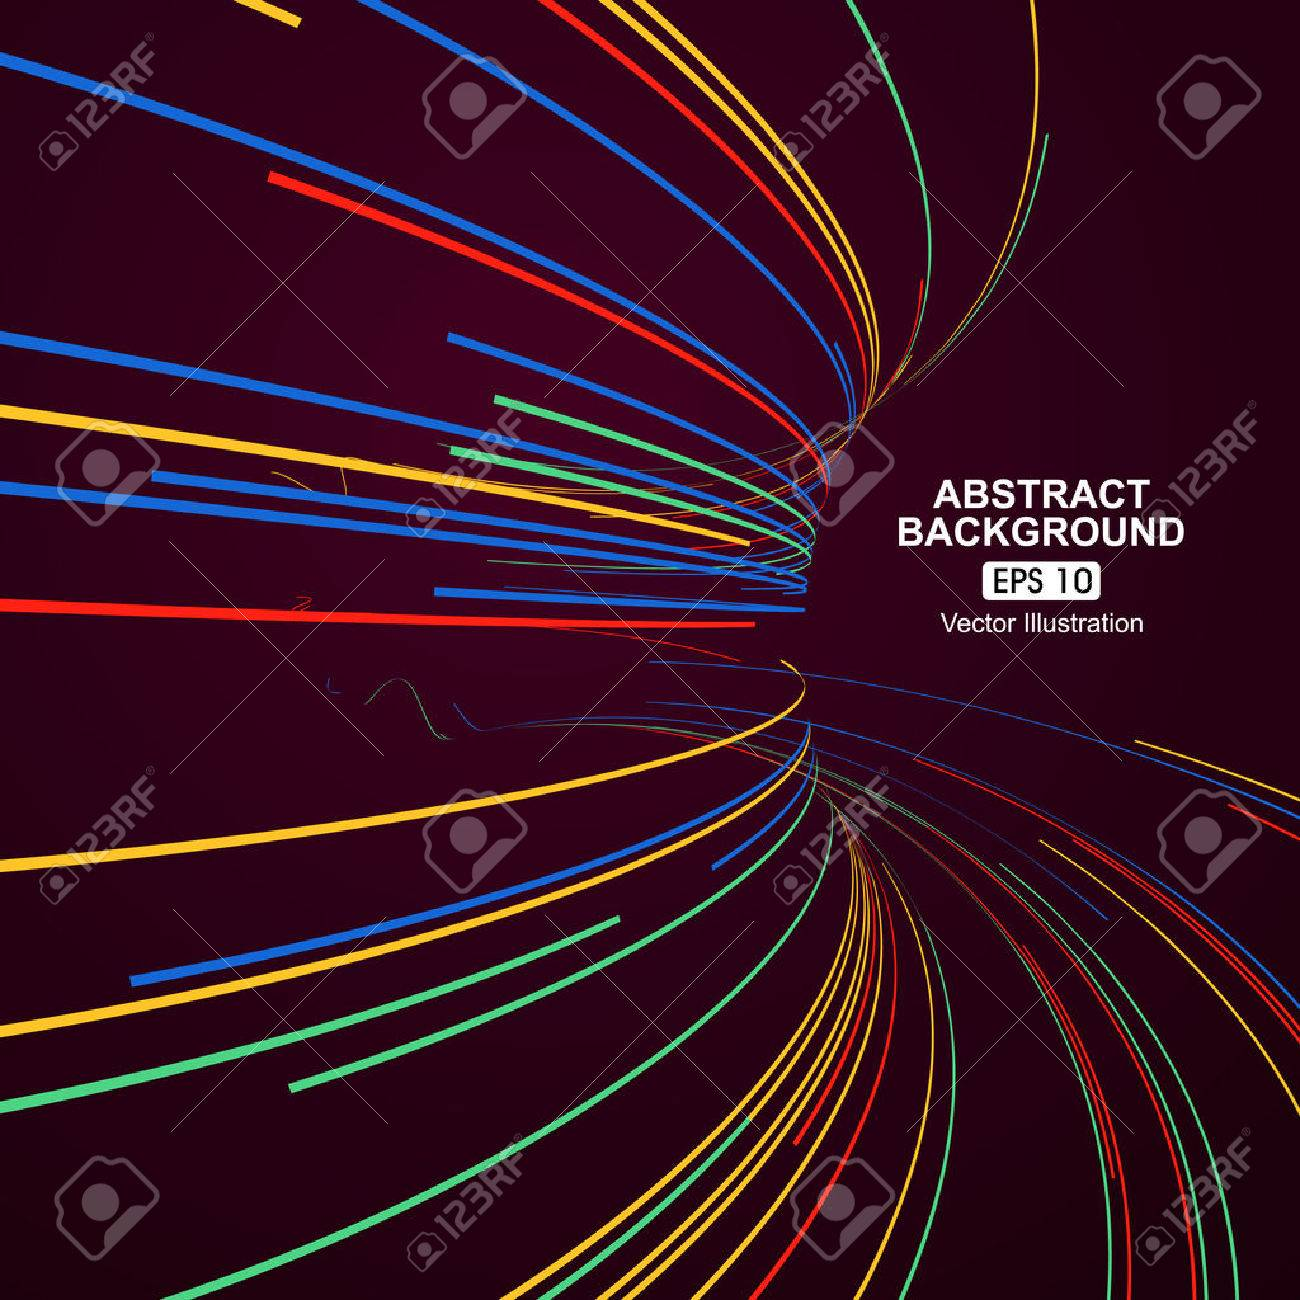 Colourful curve lines abstract background - 52591888